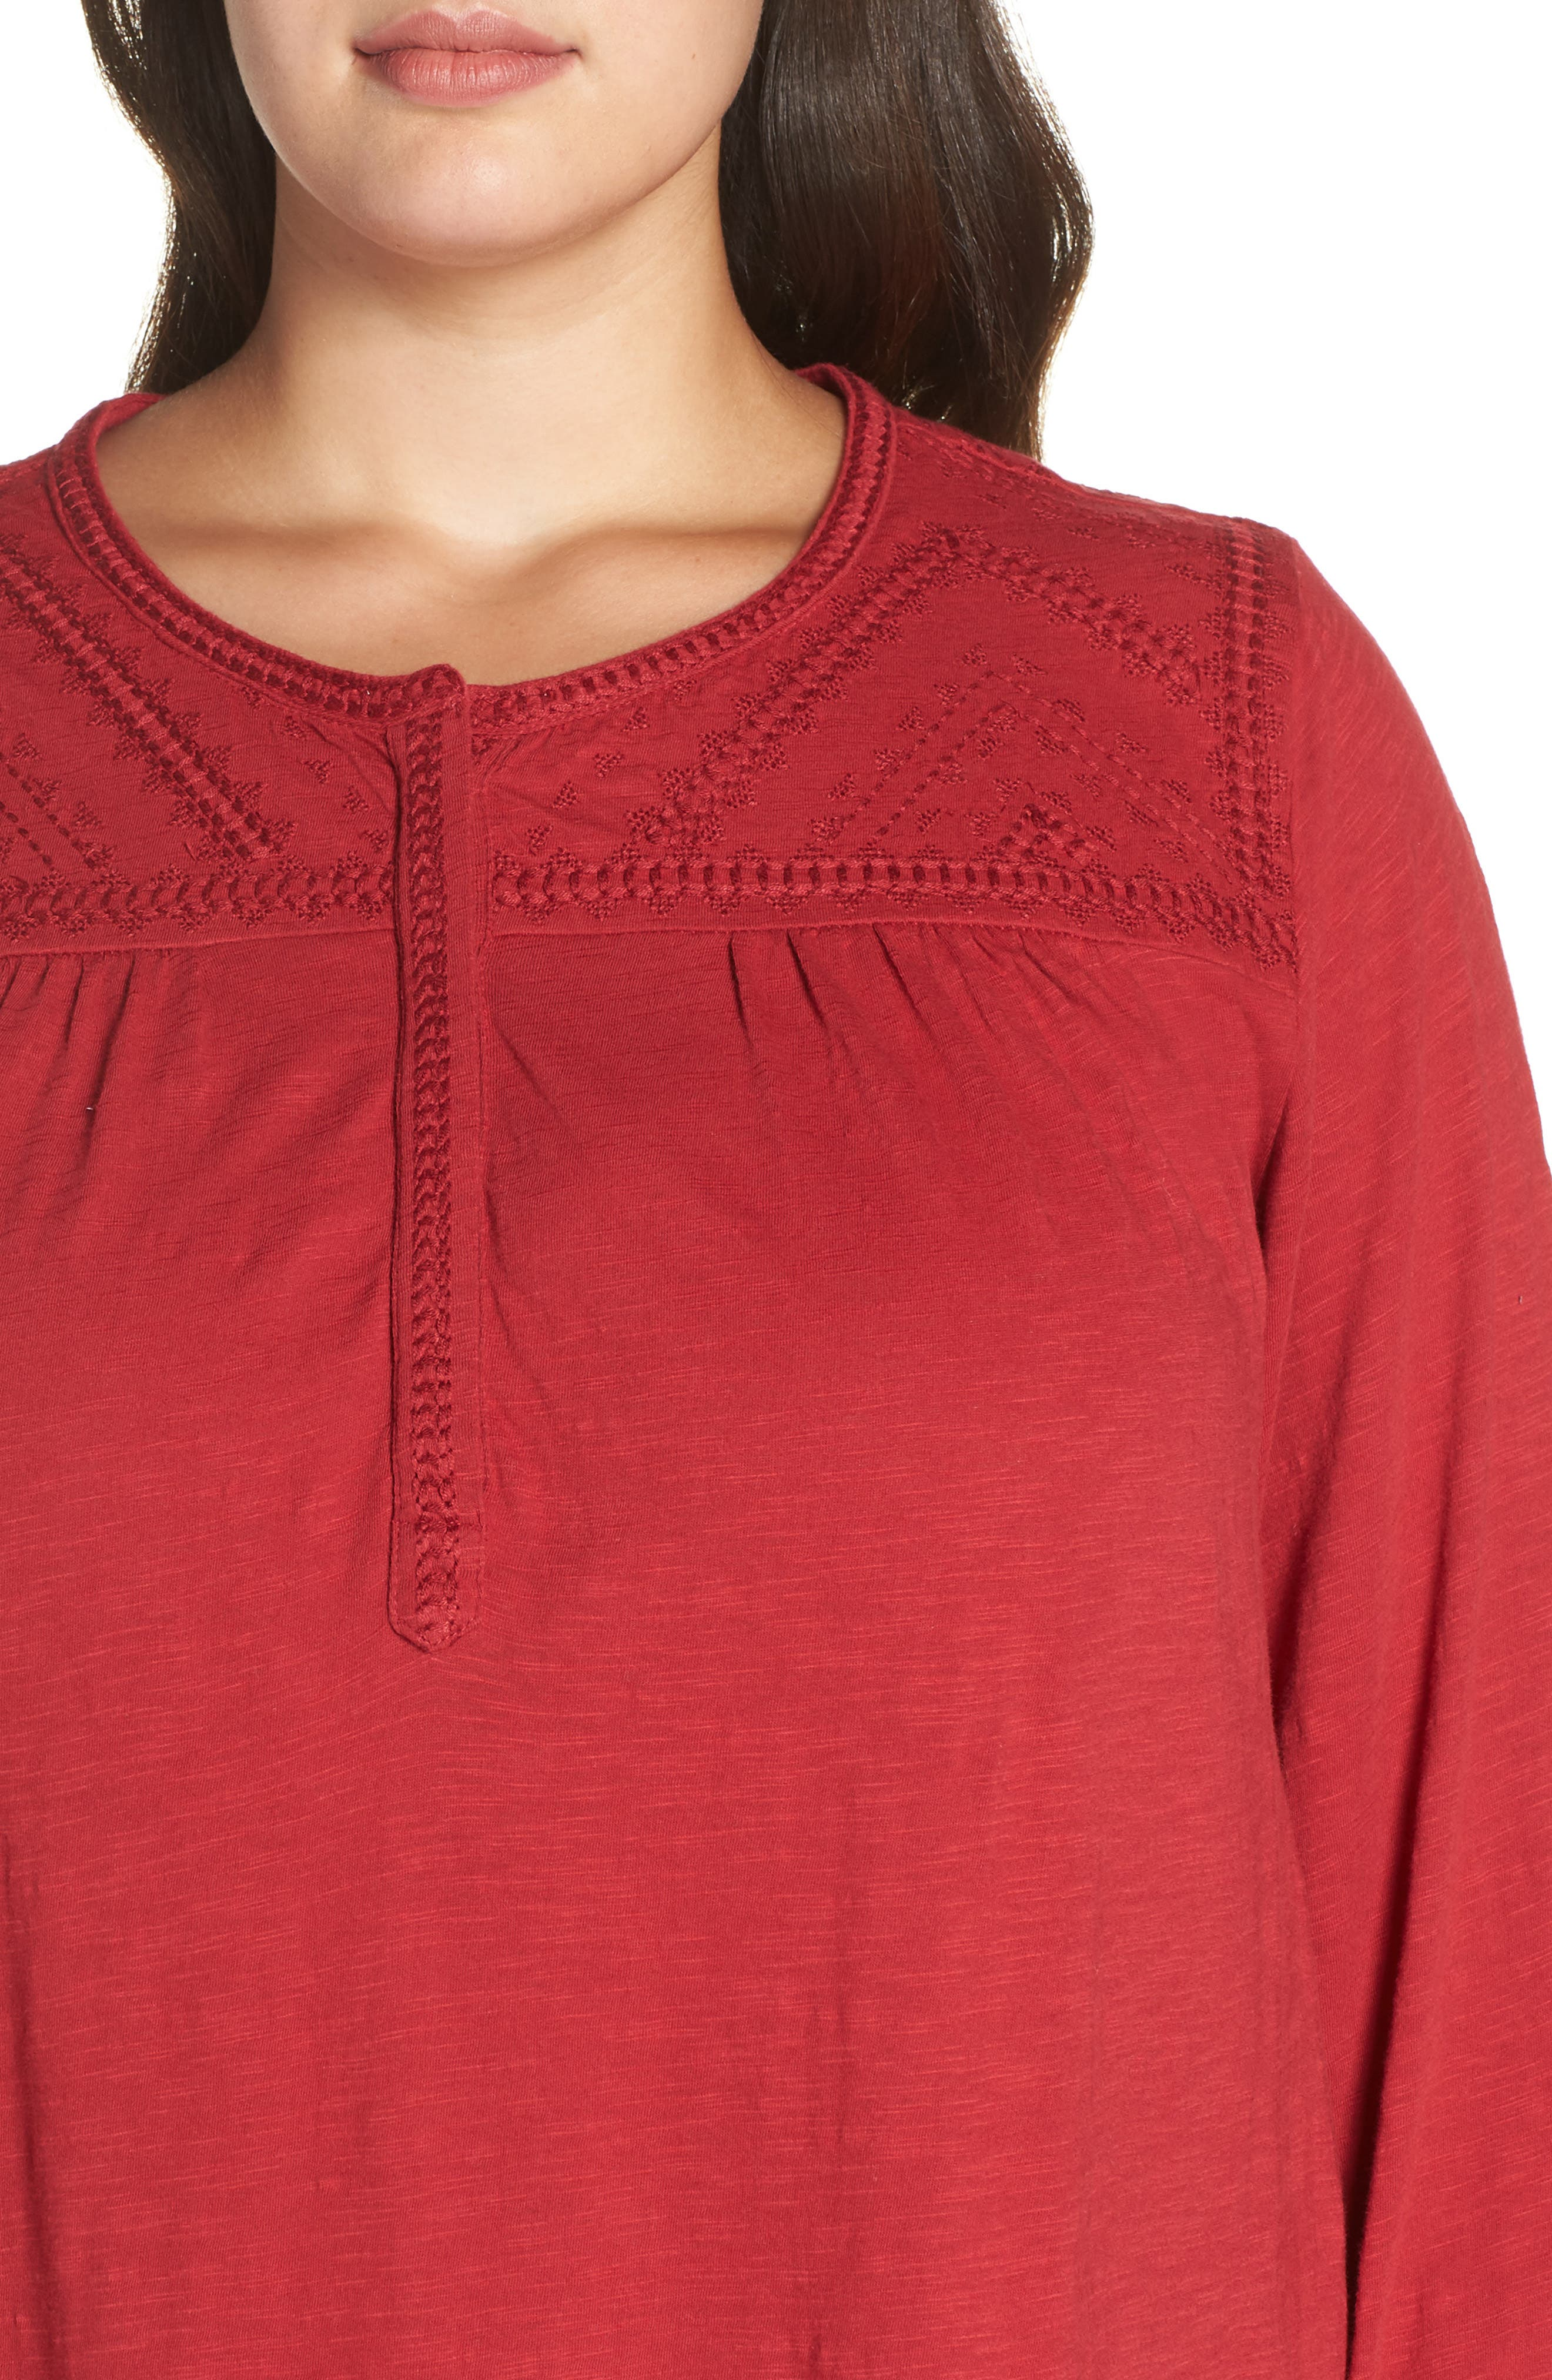 Embroidered Top,                             Alternate thumbnail 4, color,                             600